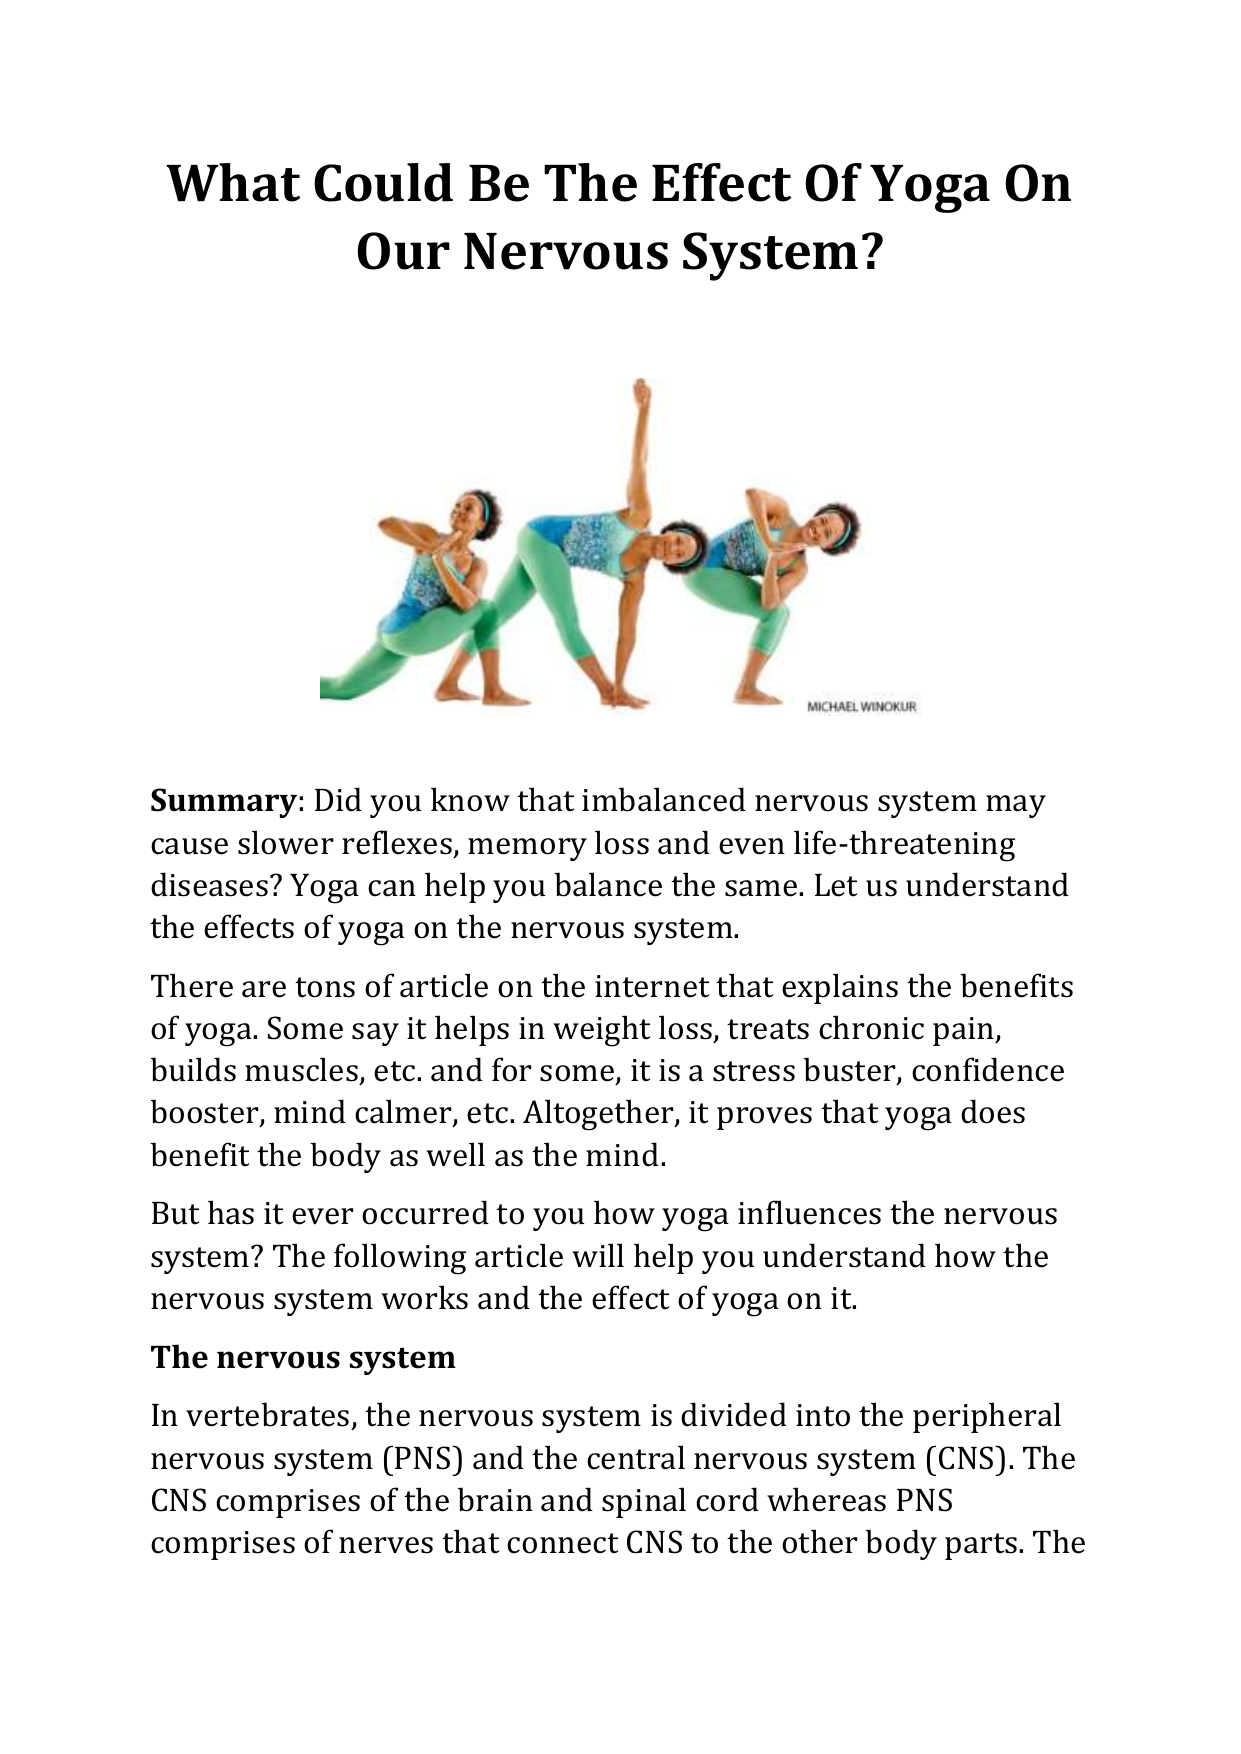 What Could Be The Effect Of Yoga On Our Nervous System